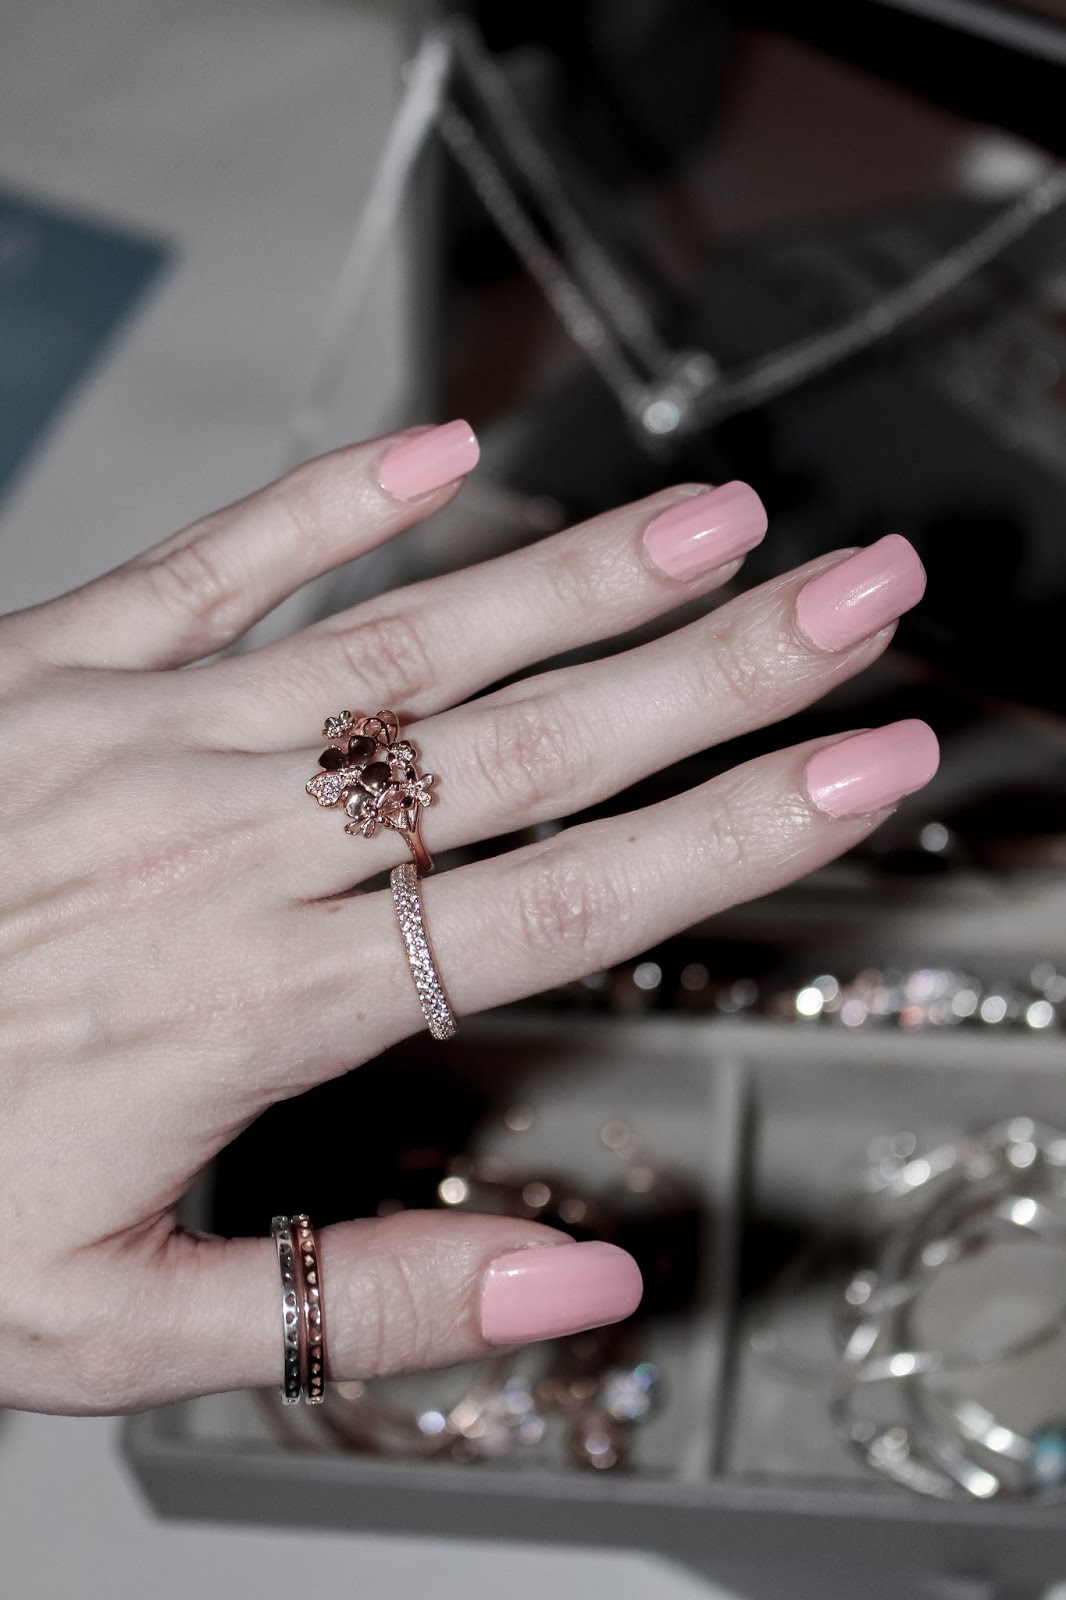 Jessica Nails Spring Collection Pinkies Up